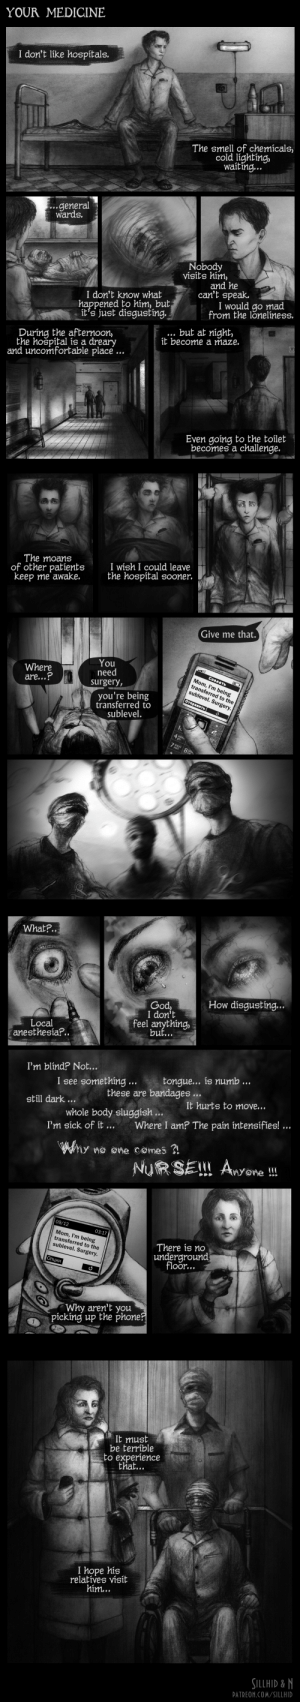 sluggish: YOUR MEDICINE  I don't like hospital s.  The smell of chemicals,  cold lighting,  waiting...  .general  wards  Nobody  visits him,  and he  can't speak  I would go mad  from the lonelíness.  I don't know what  happened to him, but  it's just disgusting.  ... but at níght,  it become a maze.  During the afternoon,  the hošpítal ís a dreary  and uncomfortable place  Even going to the toilet  becomes a challenge.  The moans  of other patients  keep me awake.  I wish I could leave  the hospital sooner.  Give me that.  You  need  Where  are...?  (  CoSaaT  Mom, I'm being  transferred to the  sublevel. Surgery.  Surgery,  you're being  transferred to  sublevel.  OTRpasHTS  4riR  7 9L8  What?...  How disgusting...  God,  I don't  feel anything,  but...  Local  anesthesia?.  I'm blínd? Not...  tongue... is numb ...  I see something  these are bandages  It hurts to MOVE...  still dark...  whole body sluggish ...  Where I am? The pain intensifies! ...  I'm síck of it ...  y Ma @ne C@mes  NuR SEL! Ayone  09/12  03:17  Mom, I'm being  ransferred to the  sublevel. Surgery.  There is no  underground  floor...  Onunn  Why aren't you  picking up the phone?  2AM  It must  be terríble  to experience  that...  I hope his  relatíves visit  him...  SILLHID &N  PATREON.COM/SILLHID